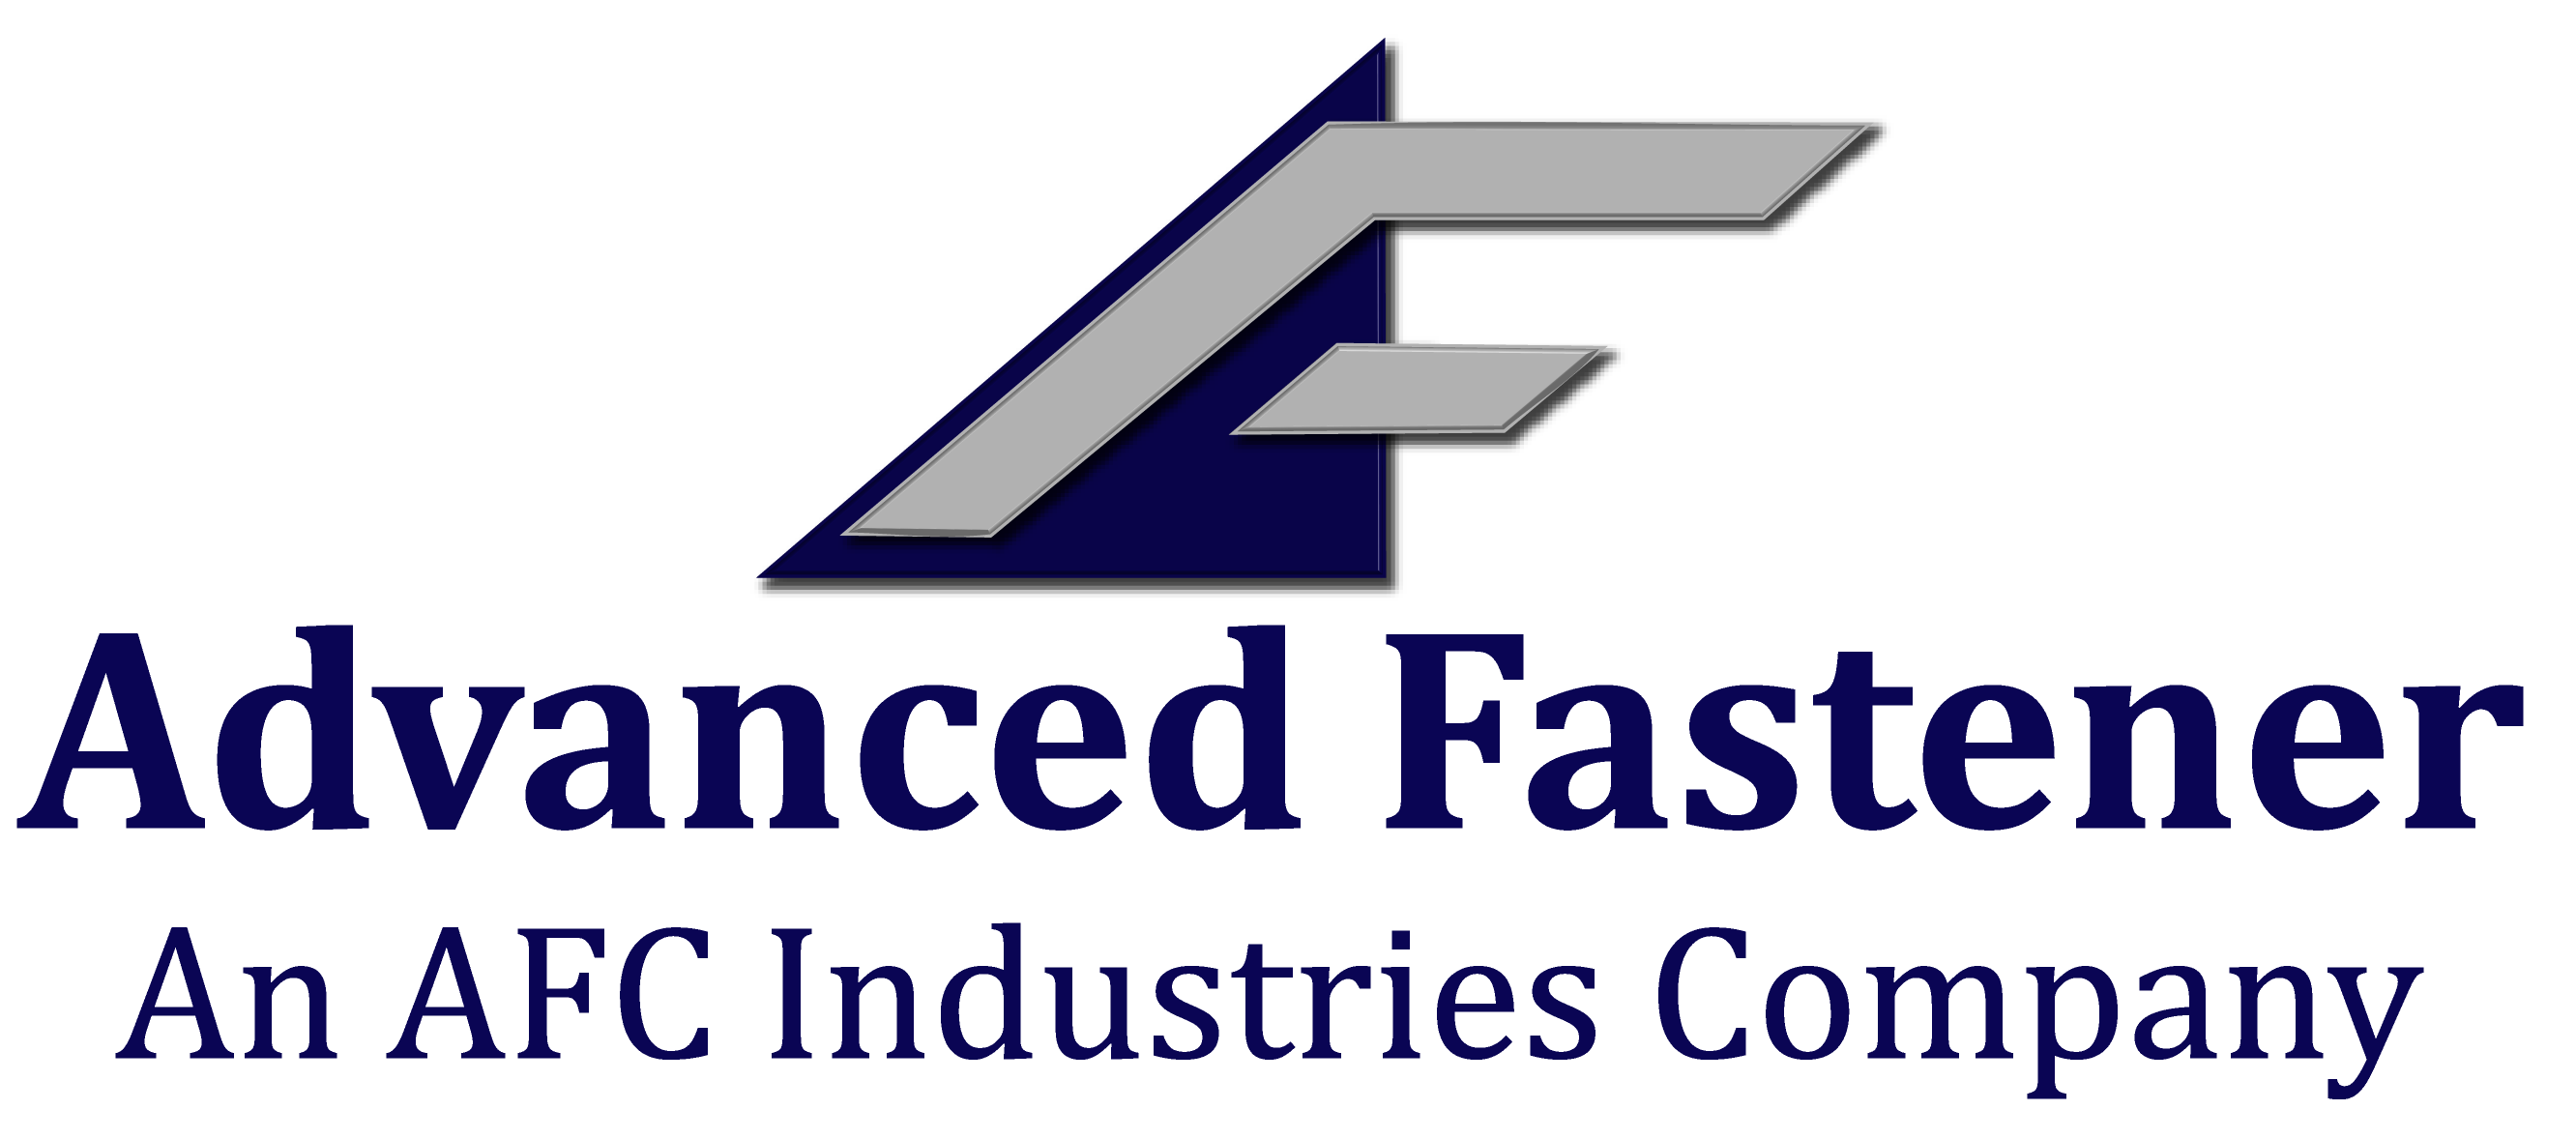 Advanced Fastener - an AFC Industries Company